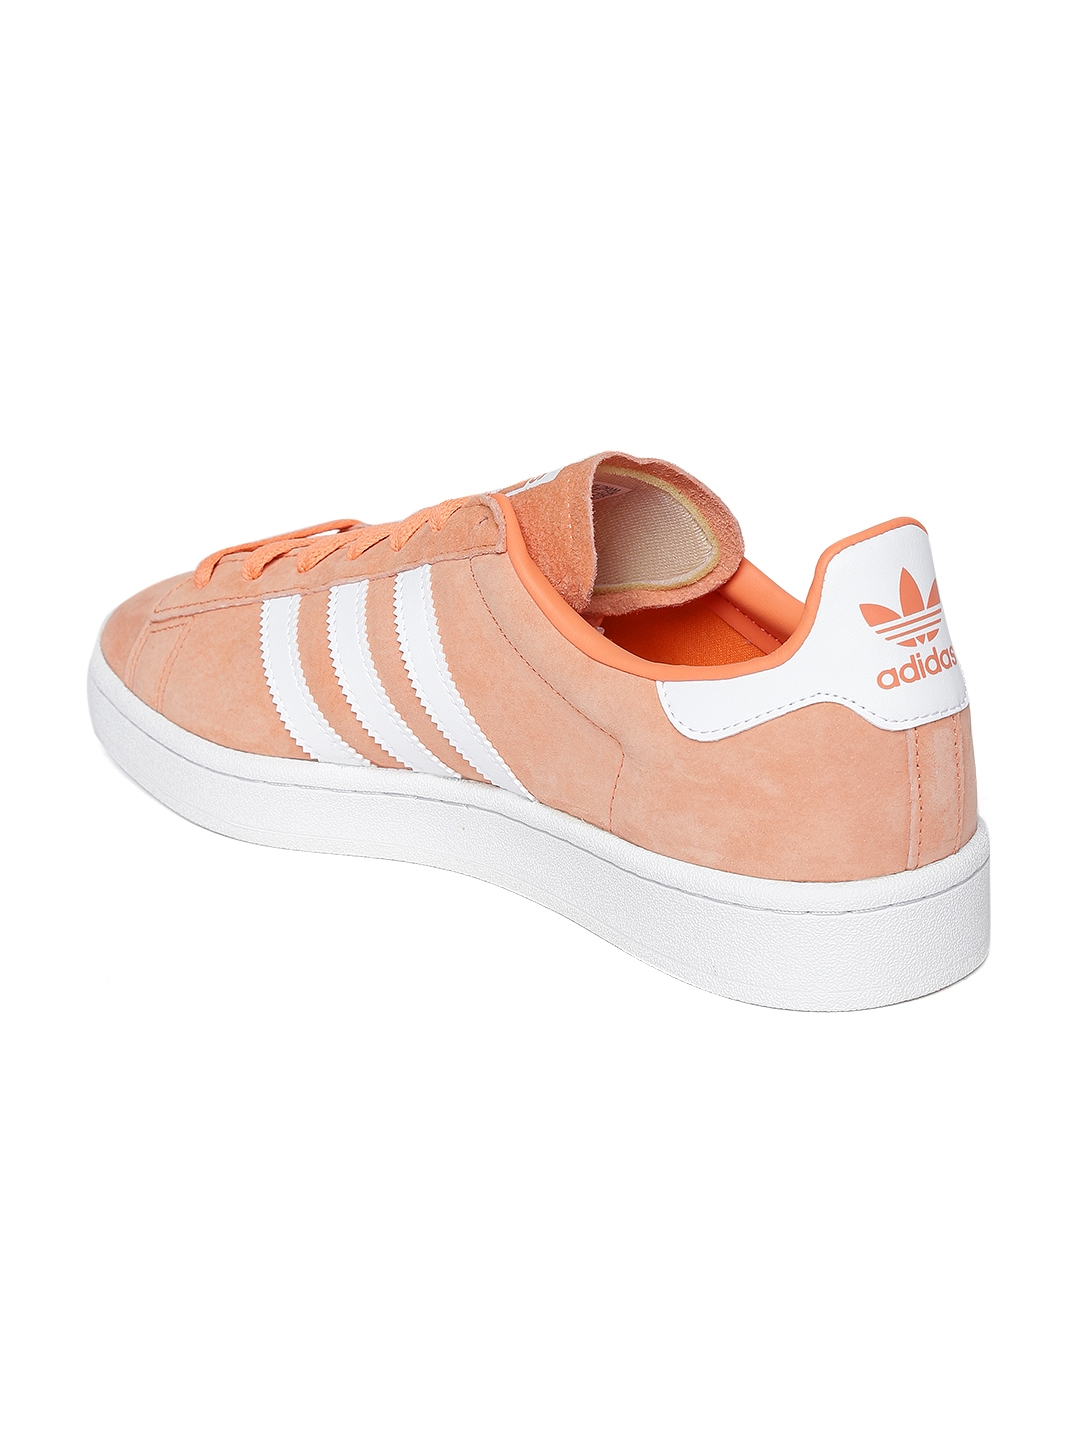 more photos 95ee7 ce2d7 ADIDAS Originals Men Peach-Coloured Campus Leather Sneakers